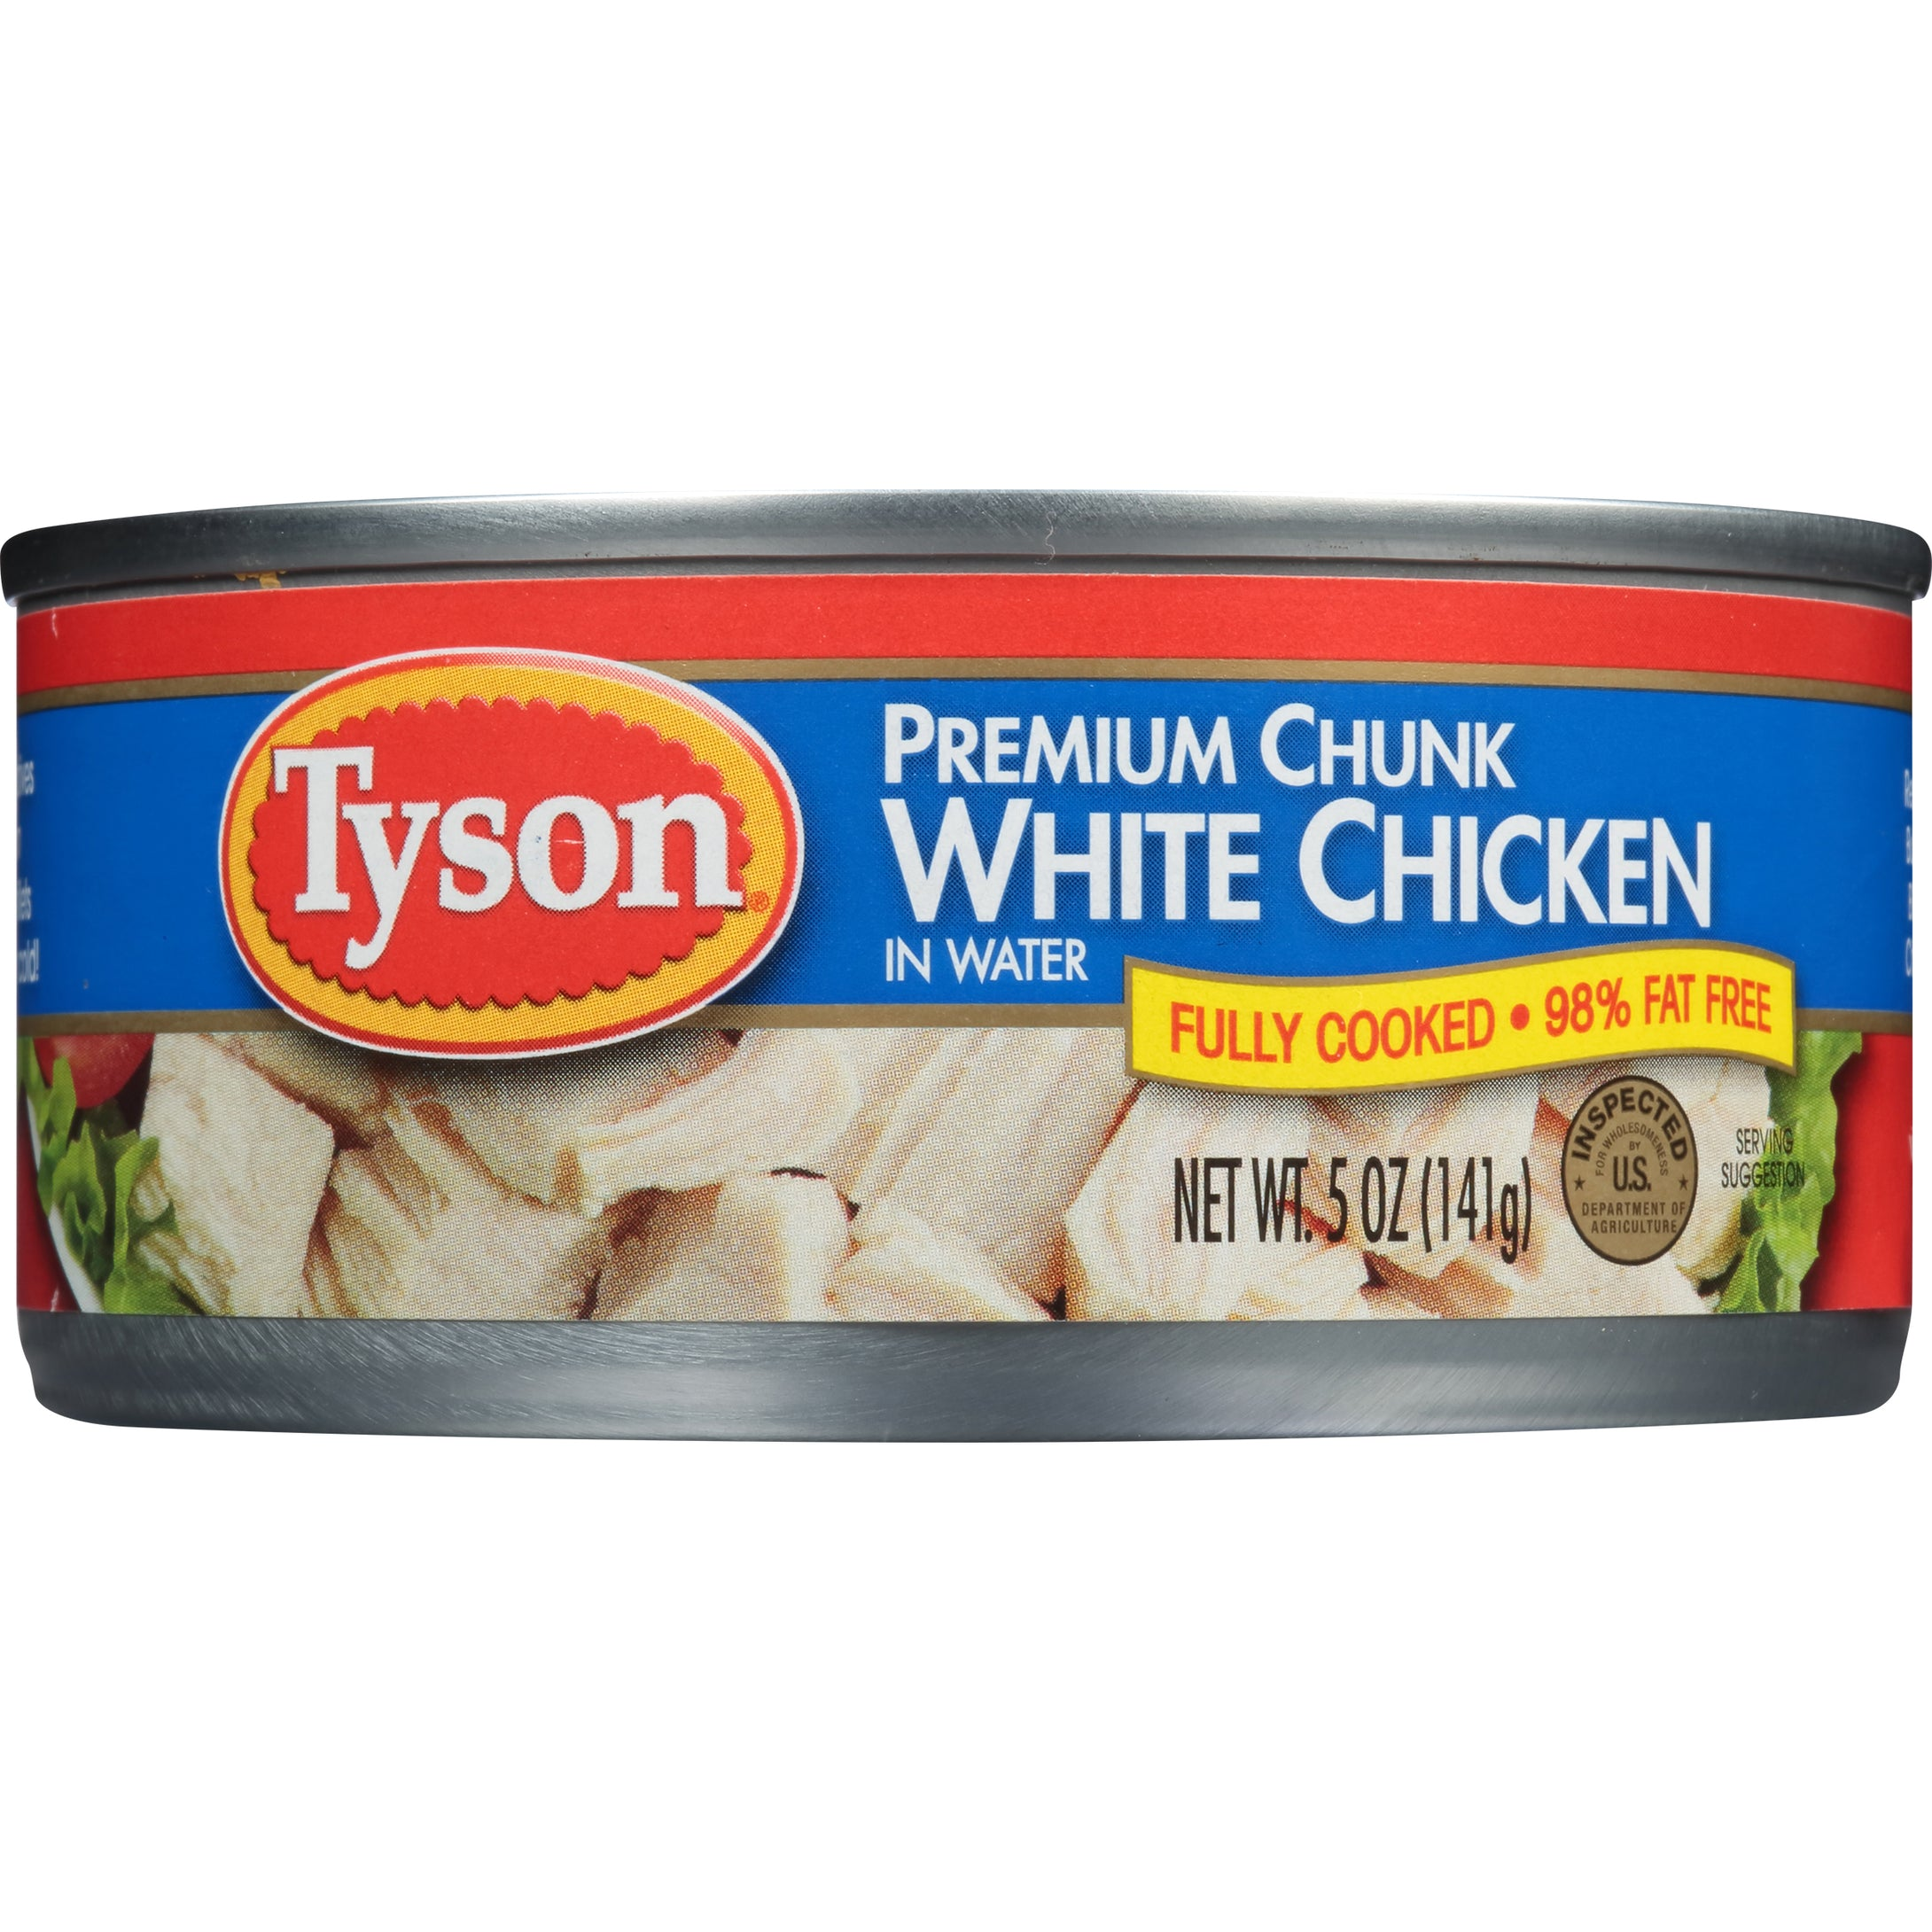 Tyson® Premium Chunk White Chicken Breast, 5 oz.